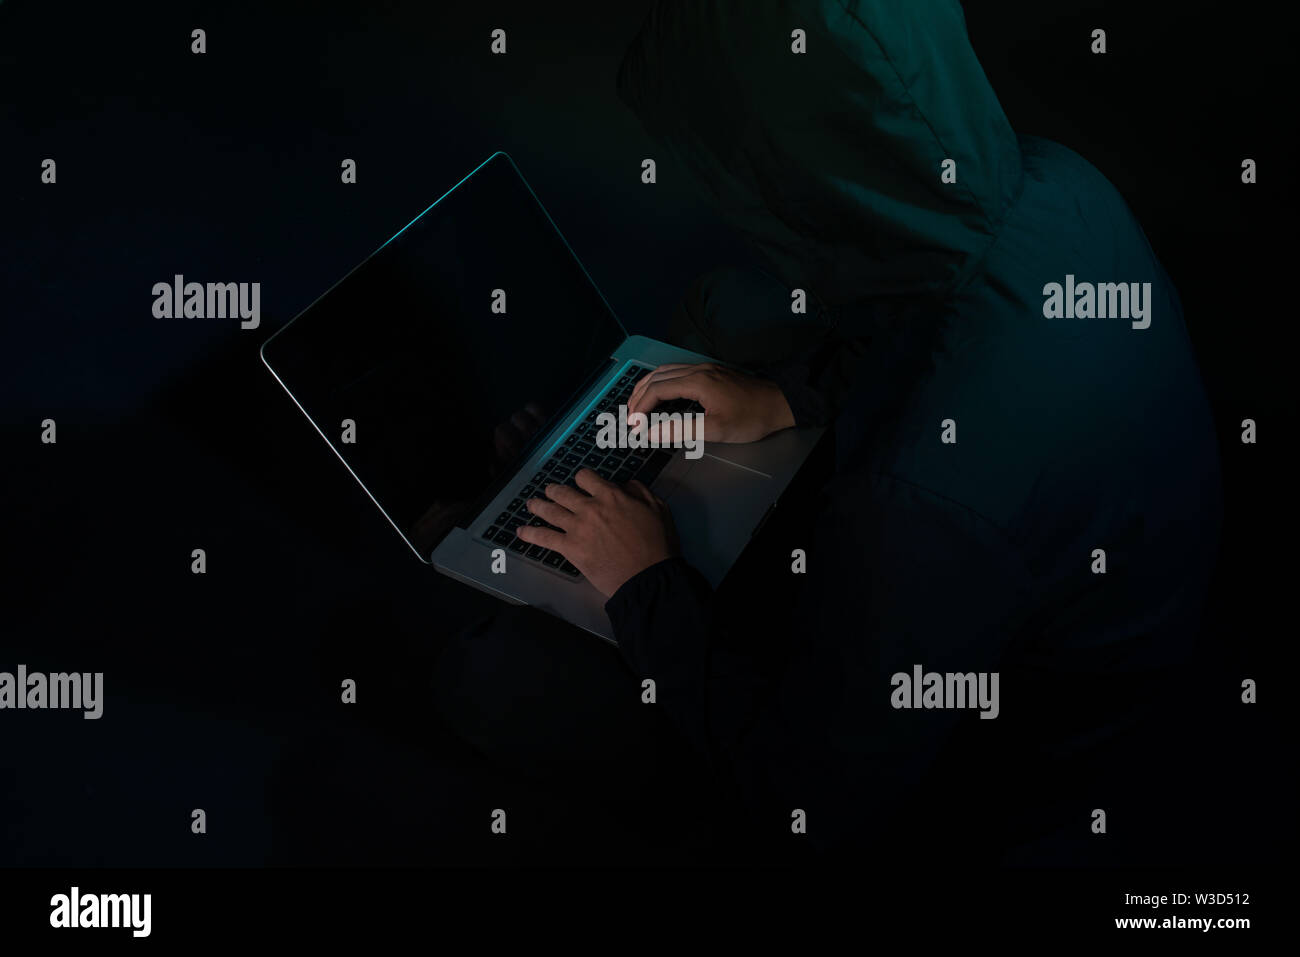 Hackers with computer data theft in the social world. - Stock Image